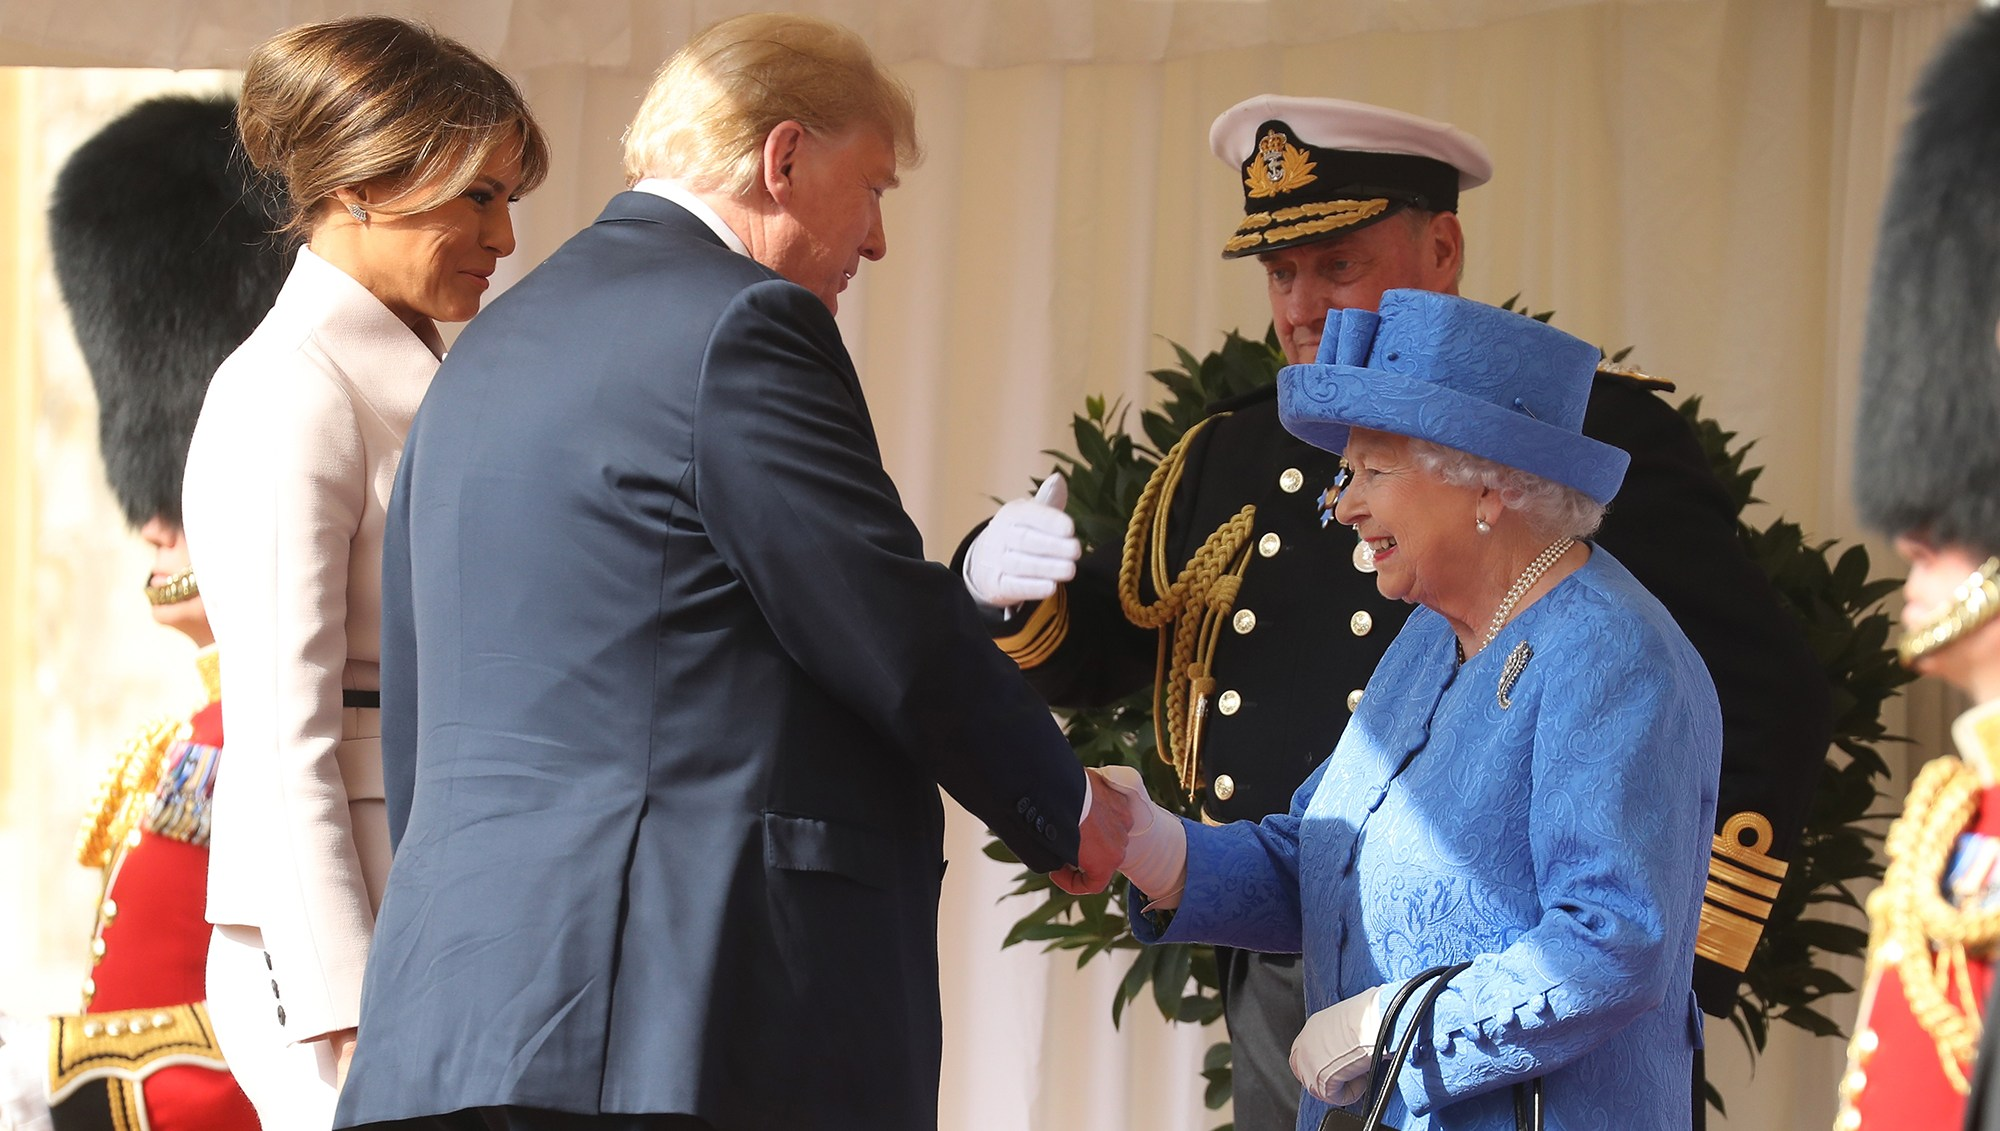 Queen Elizabeth II greets President of the United States, Donald Trump and First Lady, Melania Trump at Windsor Castle on July 13, 2018.